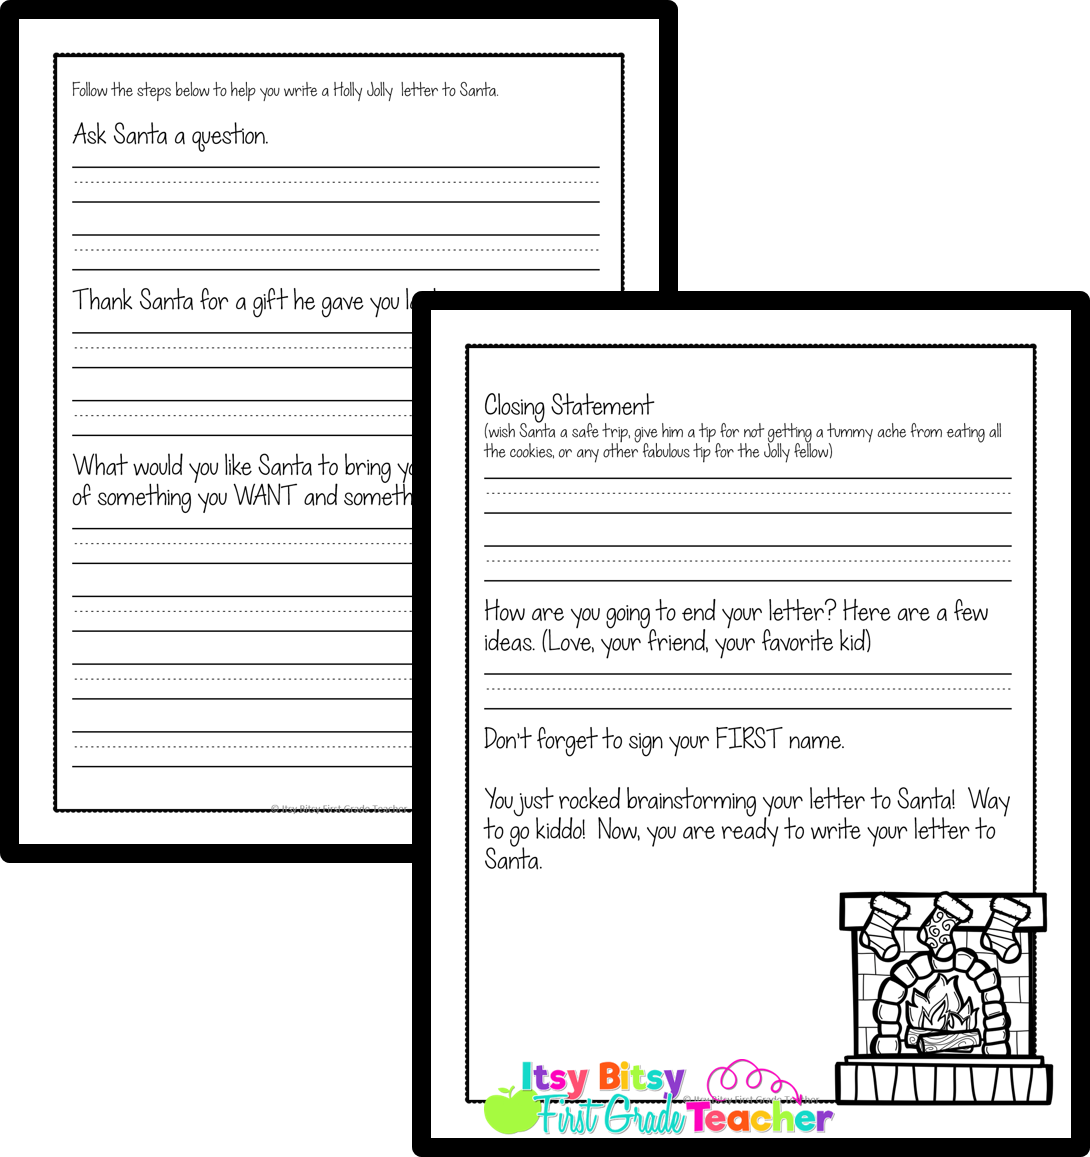 Itsy Bitsy First Grade Teacher Santa Letters Simplified